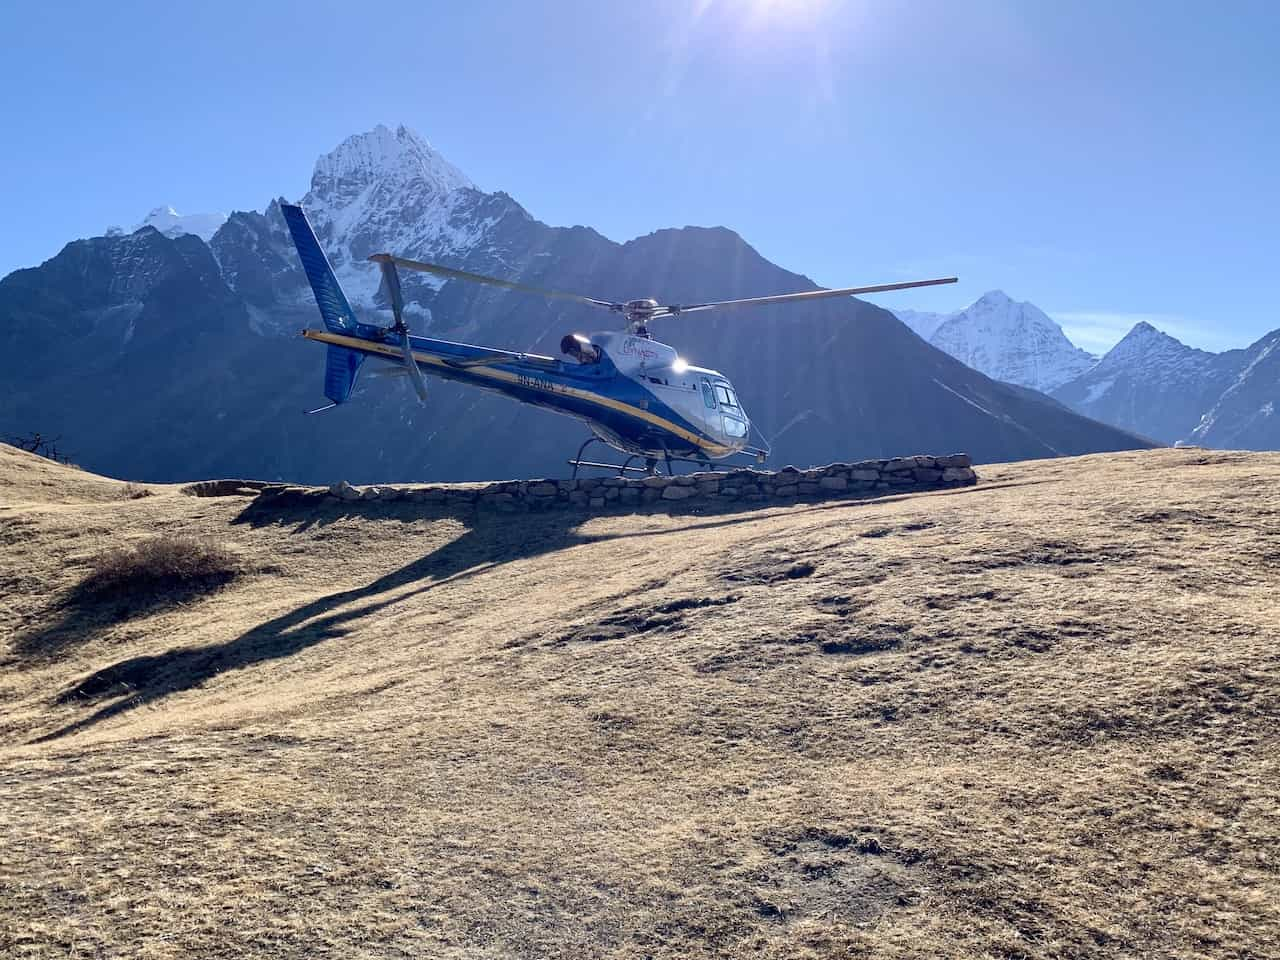 Hotel Everest View Hike Helicopter